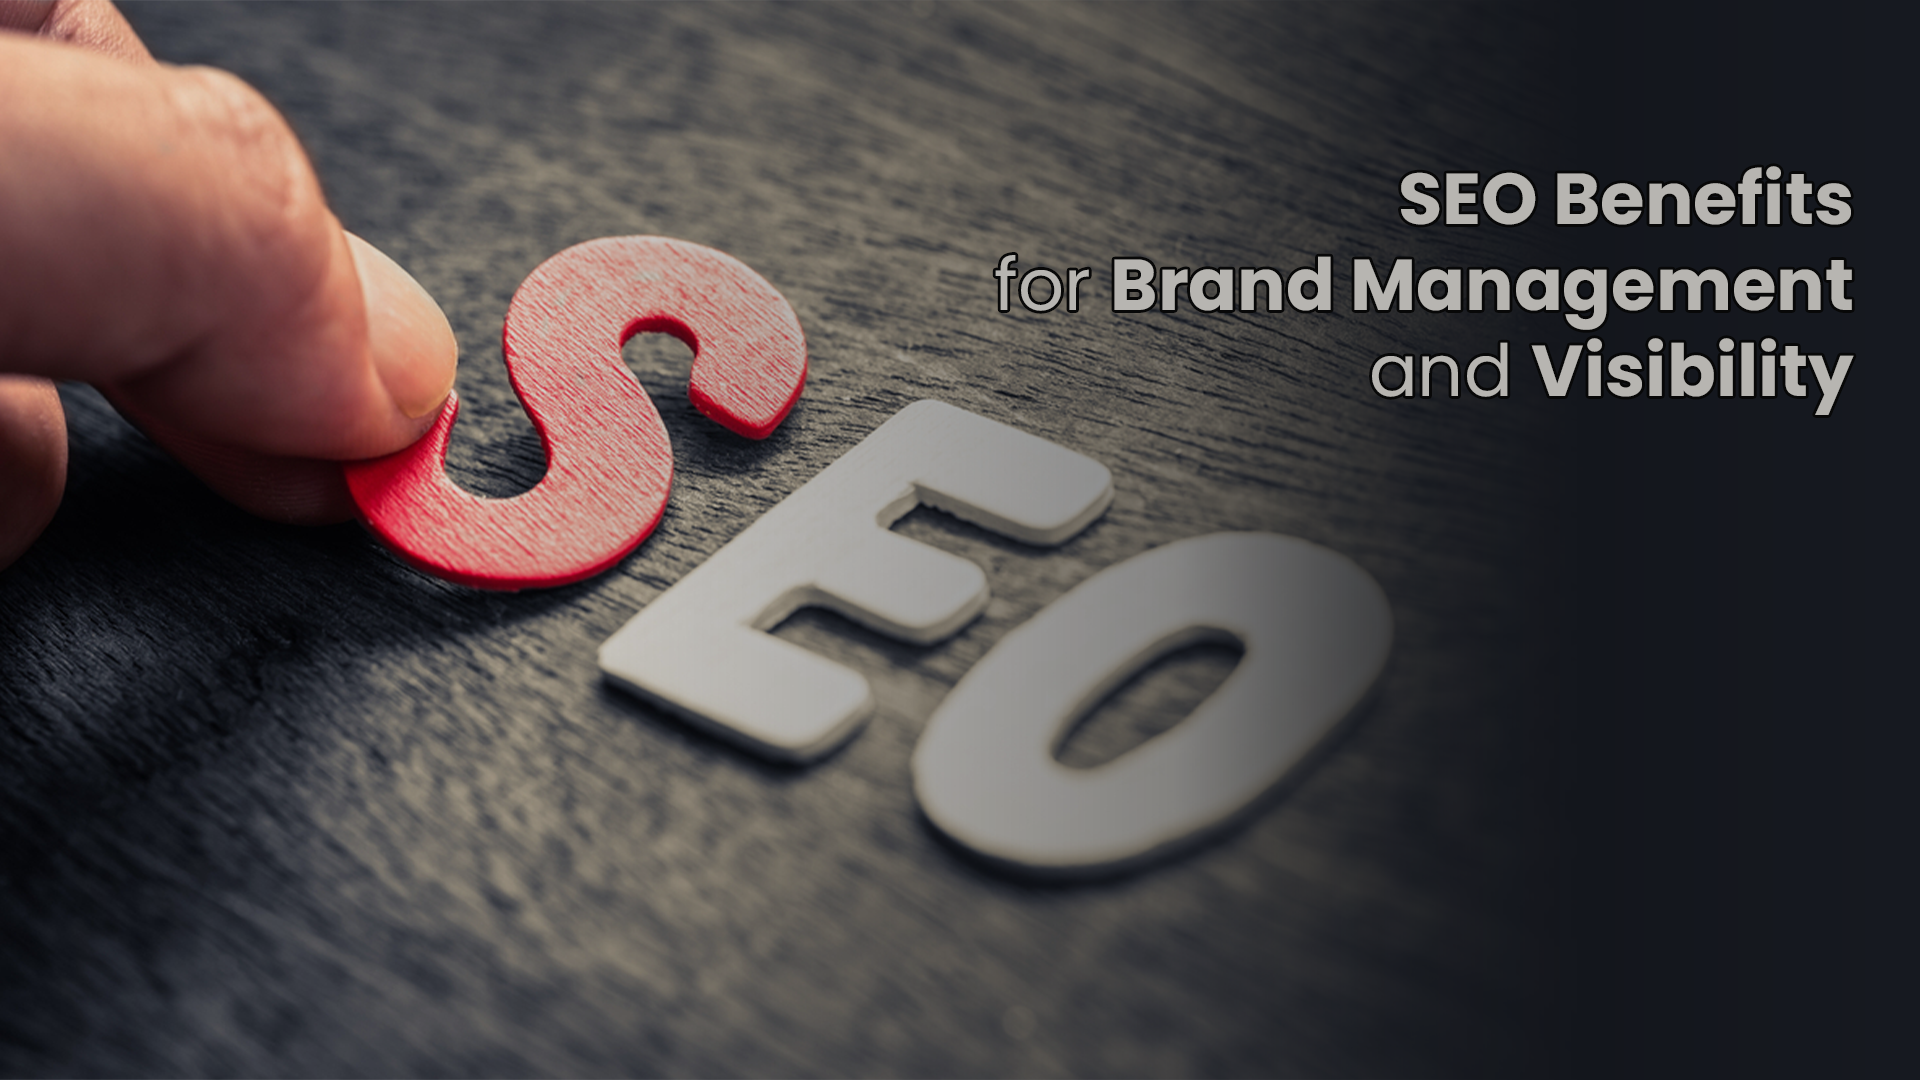 SEO Benefits for Brand Management and Visibility